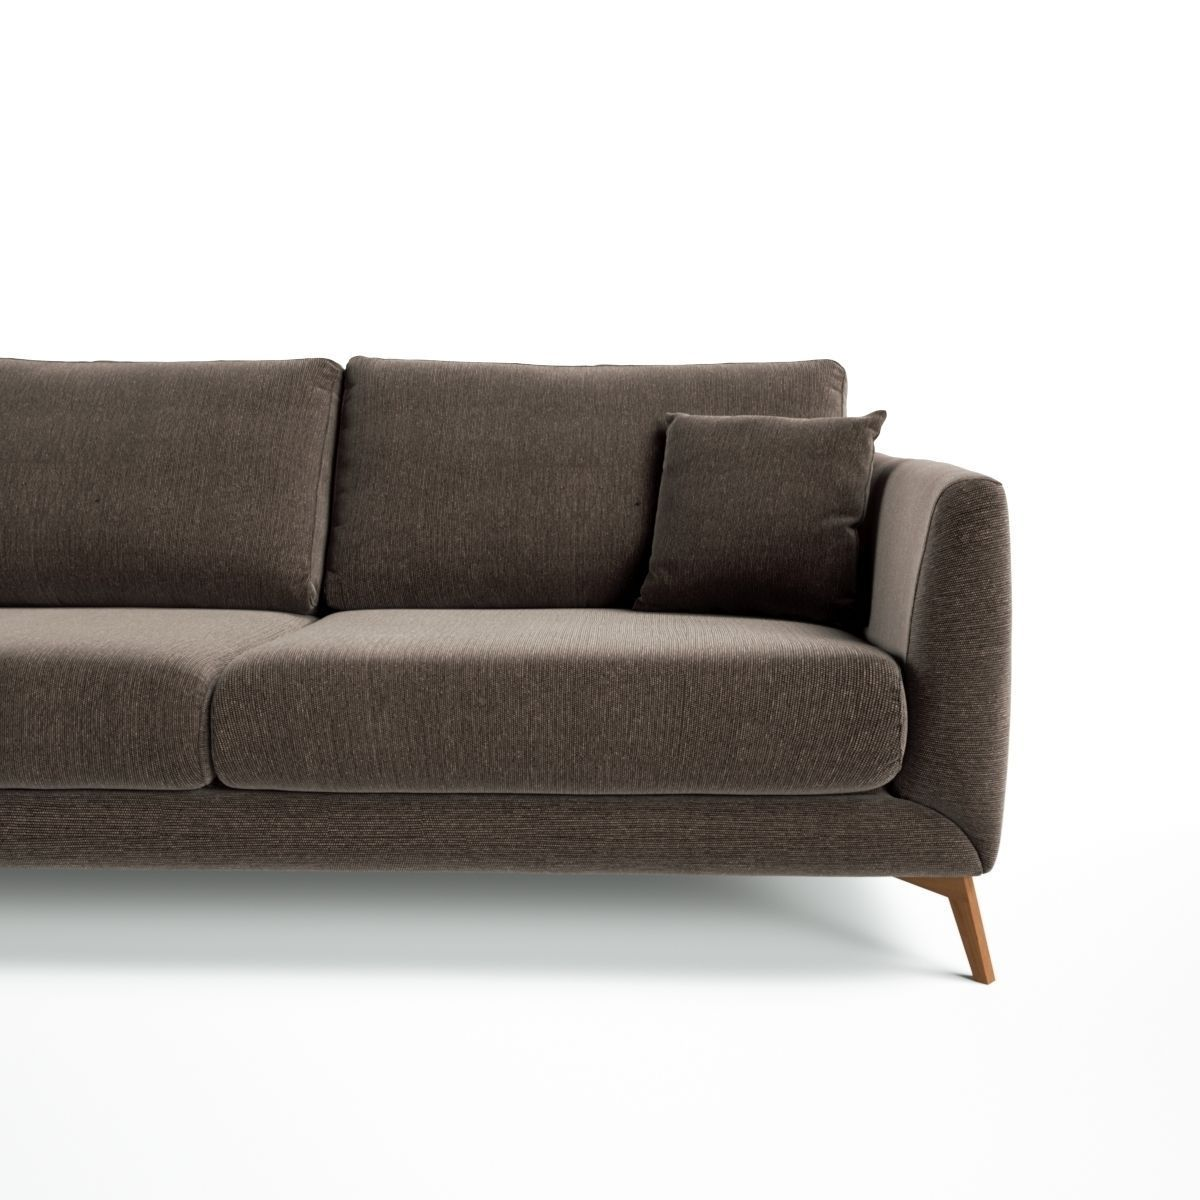 Boconcept fargo sofa 3d model max for 3 on a couch